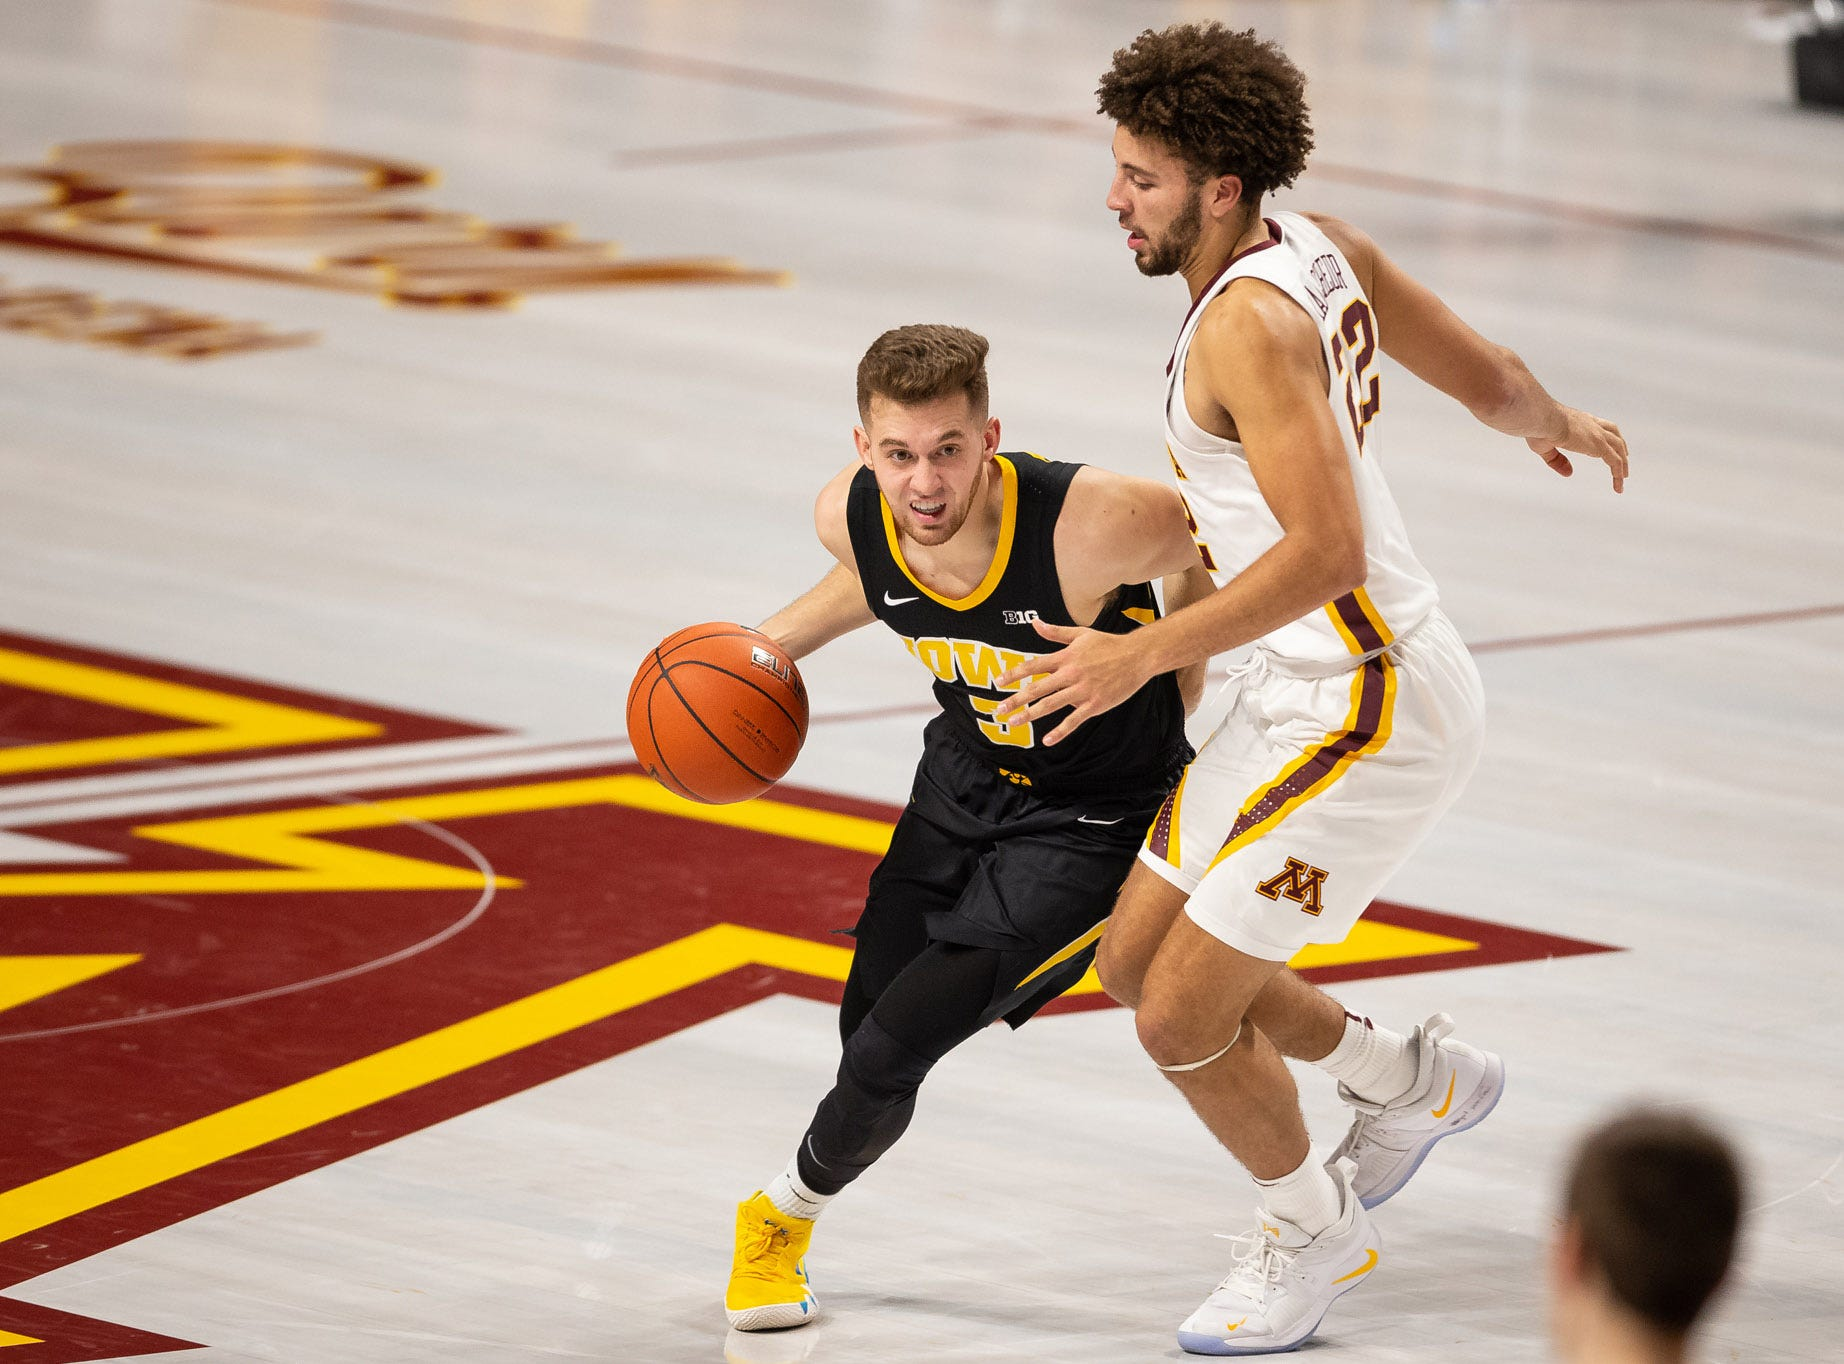 Iowa Hawkeyes guard Jordan Bohannon (3) dribbles the ball as Minnesota Gophers guard Gabe Kalscheur (22) defends during the second half at Williams Arena. Mandatory Credit: Harrison Barden-USA TODAY Sports